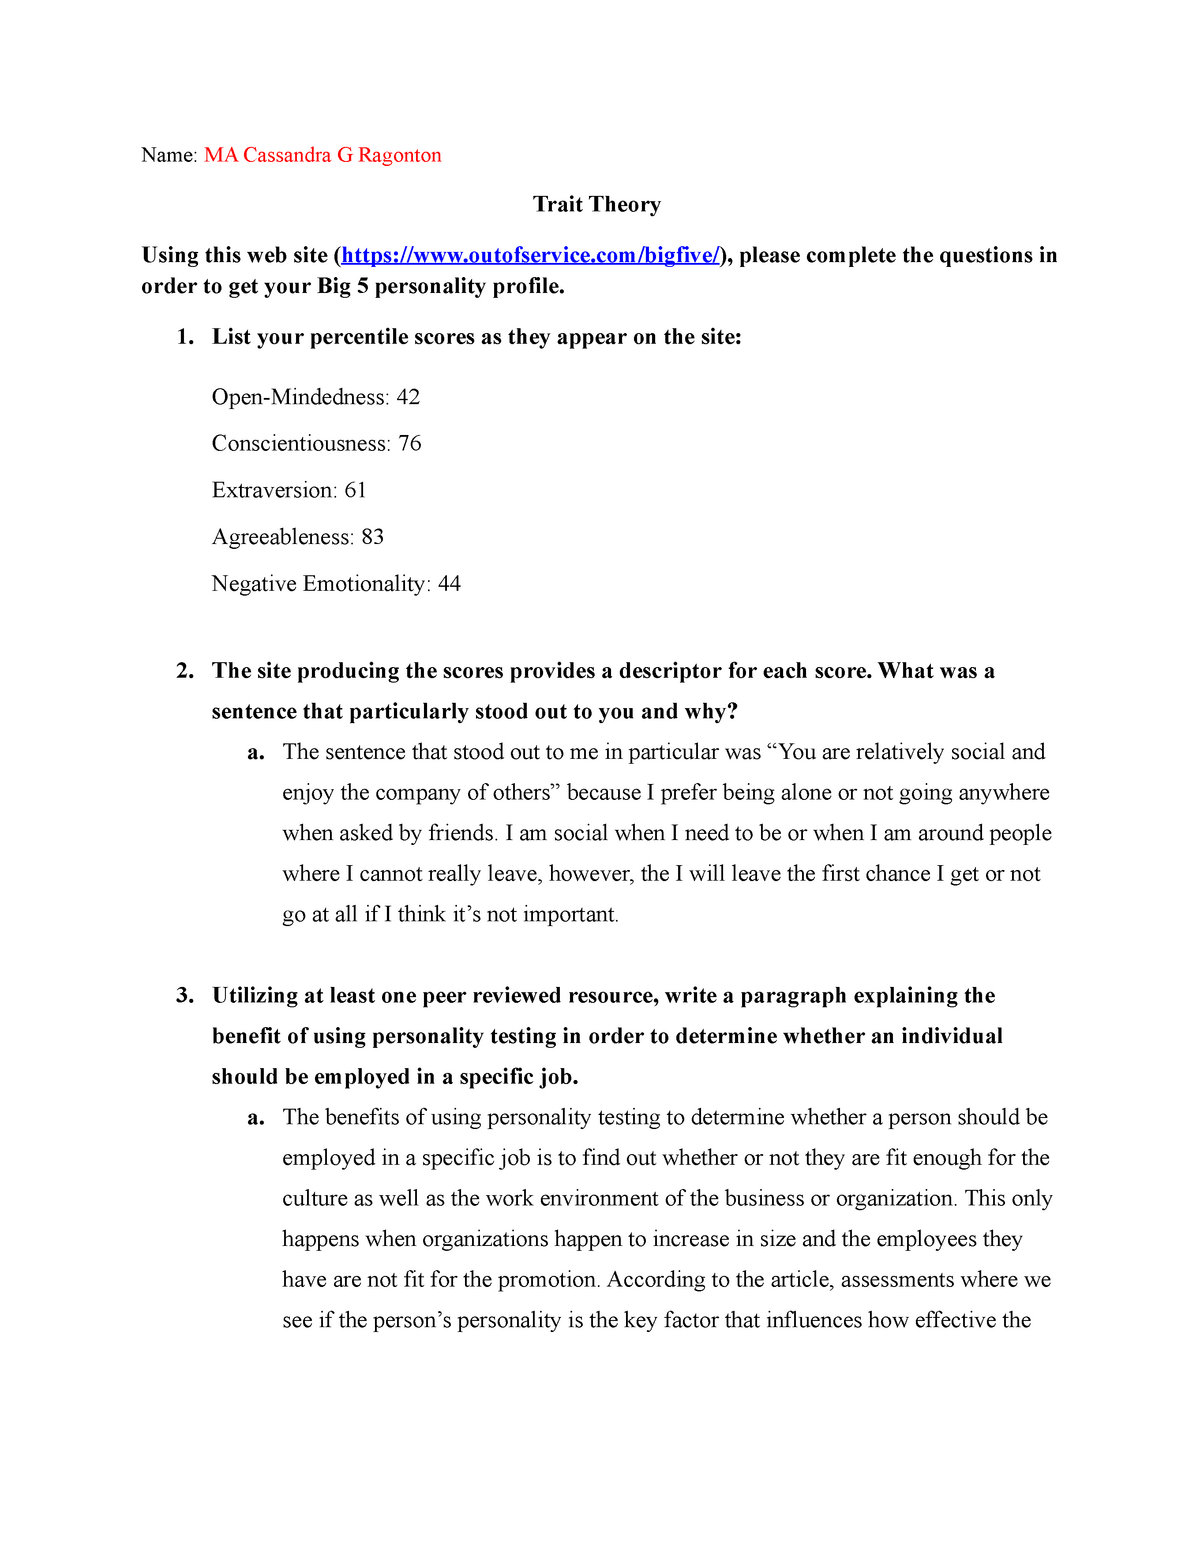 Lord of the flies academic essay